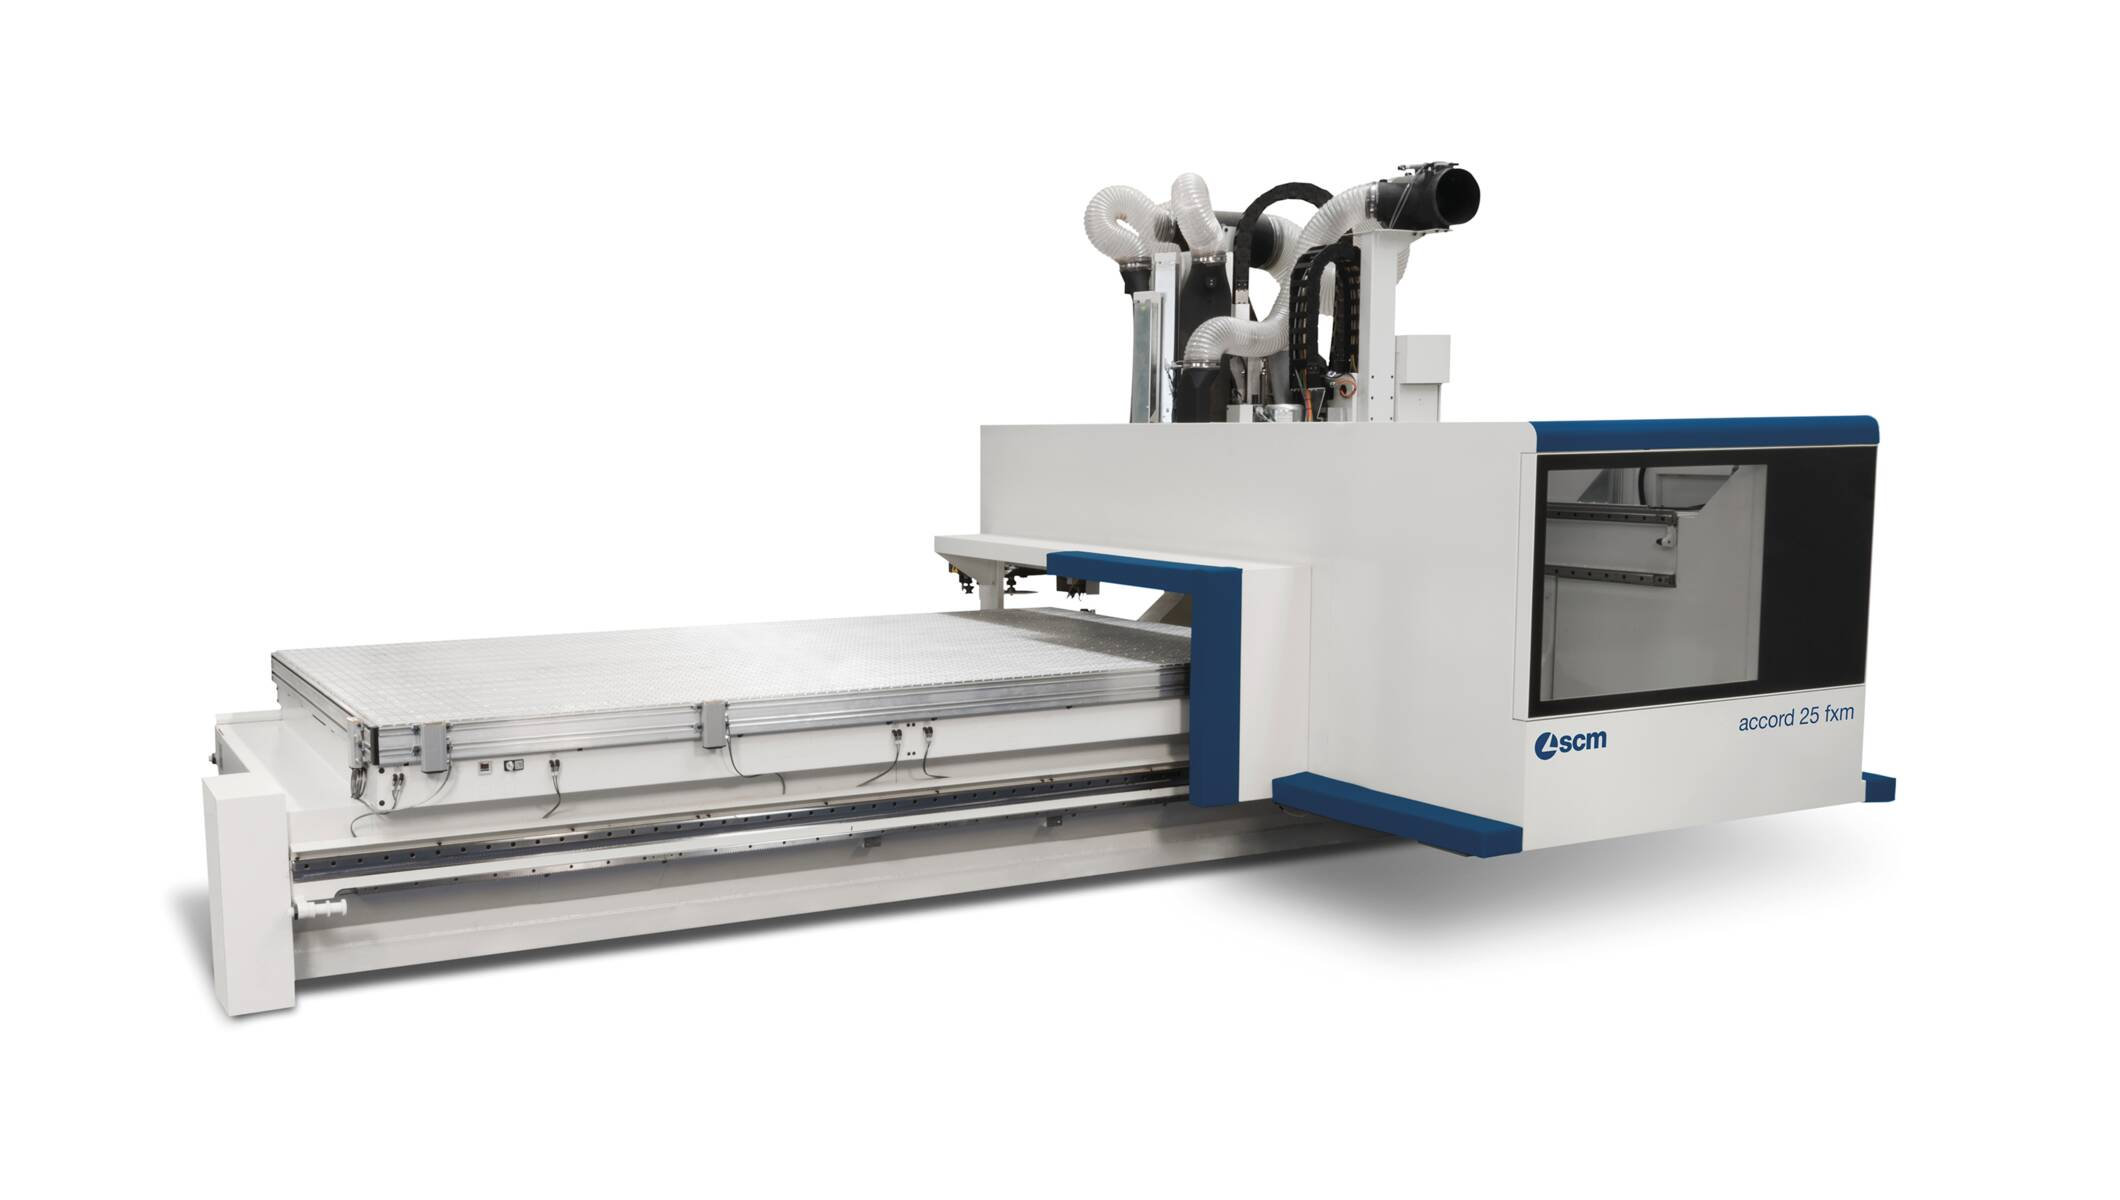 CNC Machining Centres - CNC Machining Centres for solid wood routing and drilling - accord 25 fxm